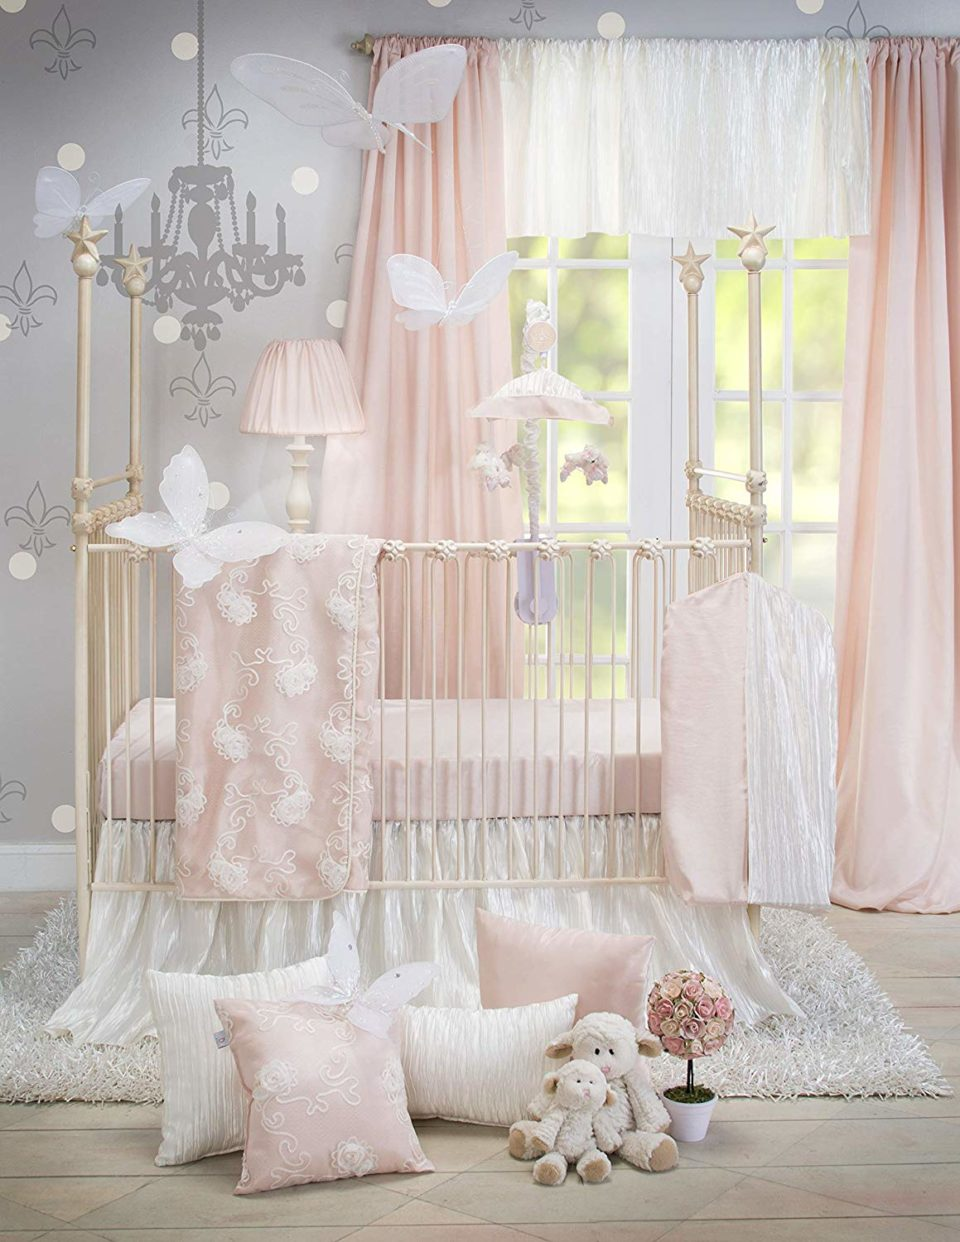 Crib Bedding Set Lil Princess by Glenna Jean